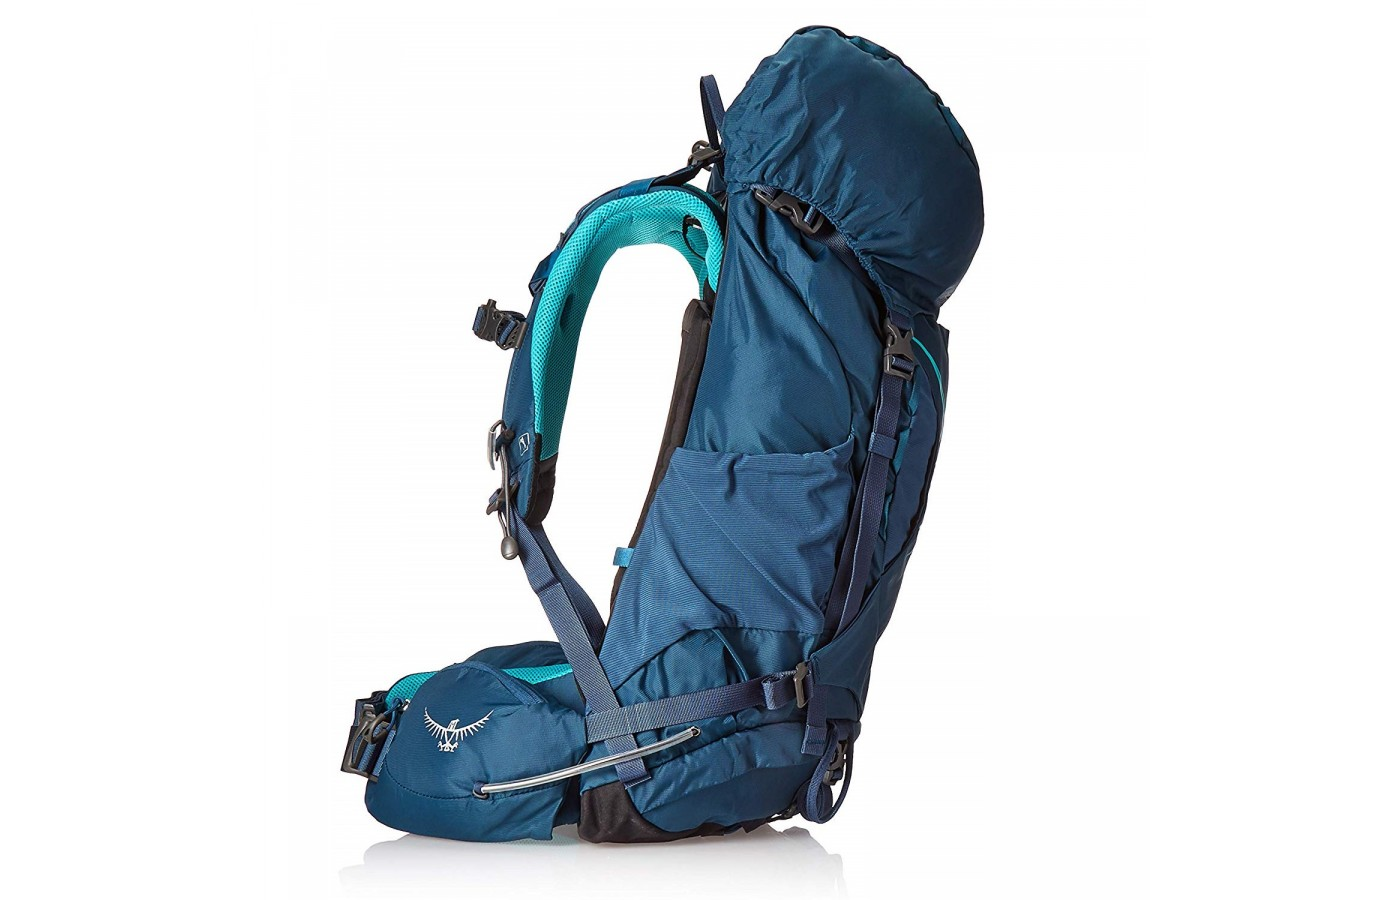 The Osprey Kyte 36 offers an integrated rain cover to protect its contents even when out in the rain.